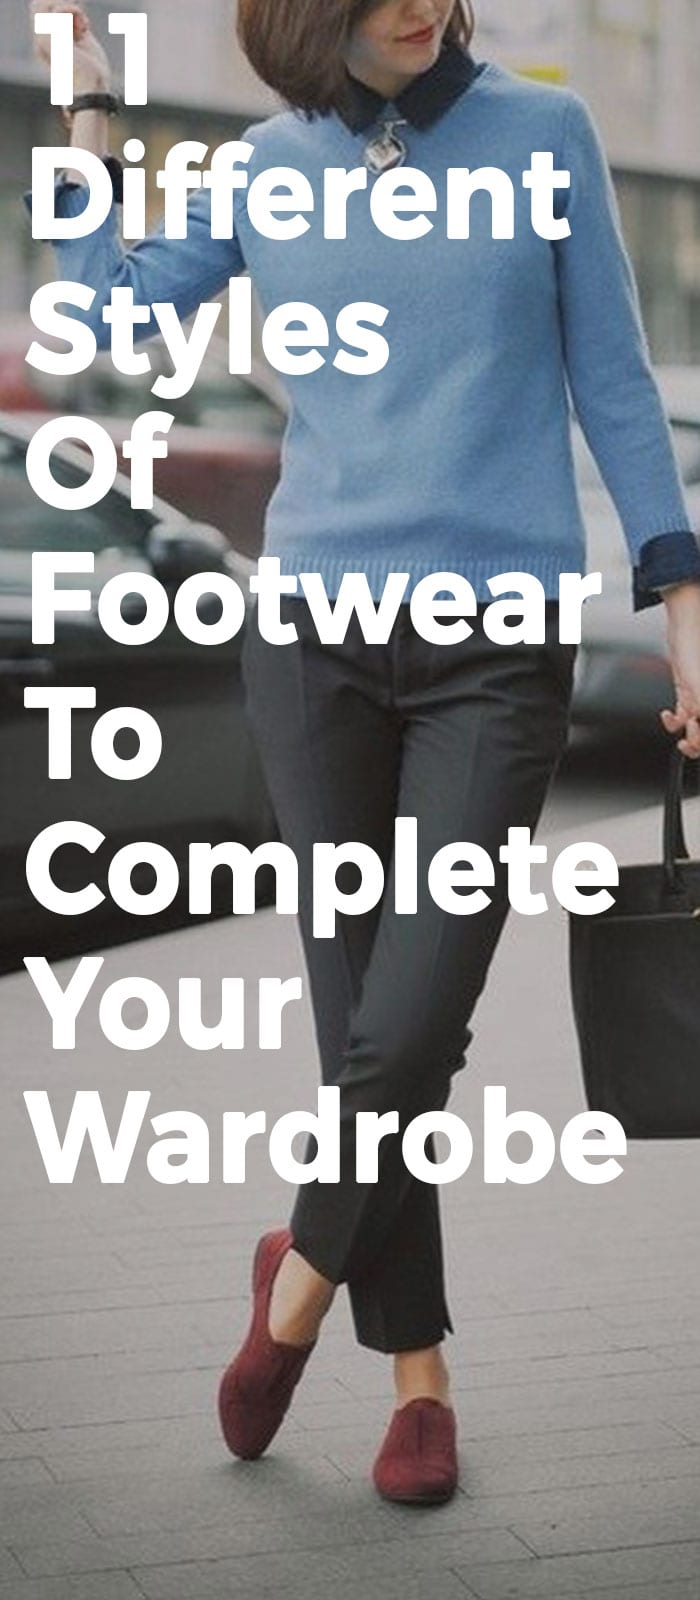 11 Different Styles Of Footwear To Complete Your Wardrobe.